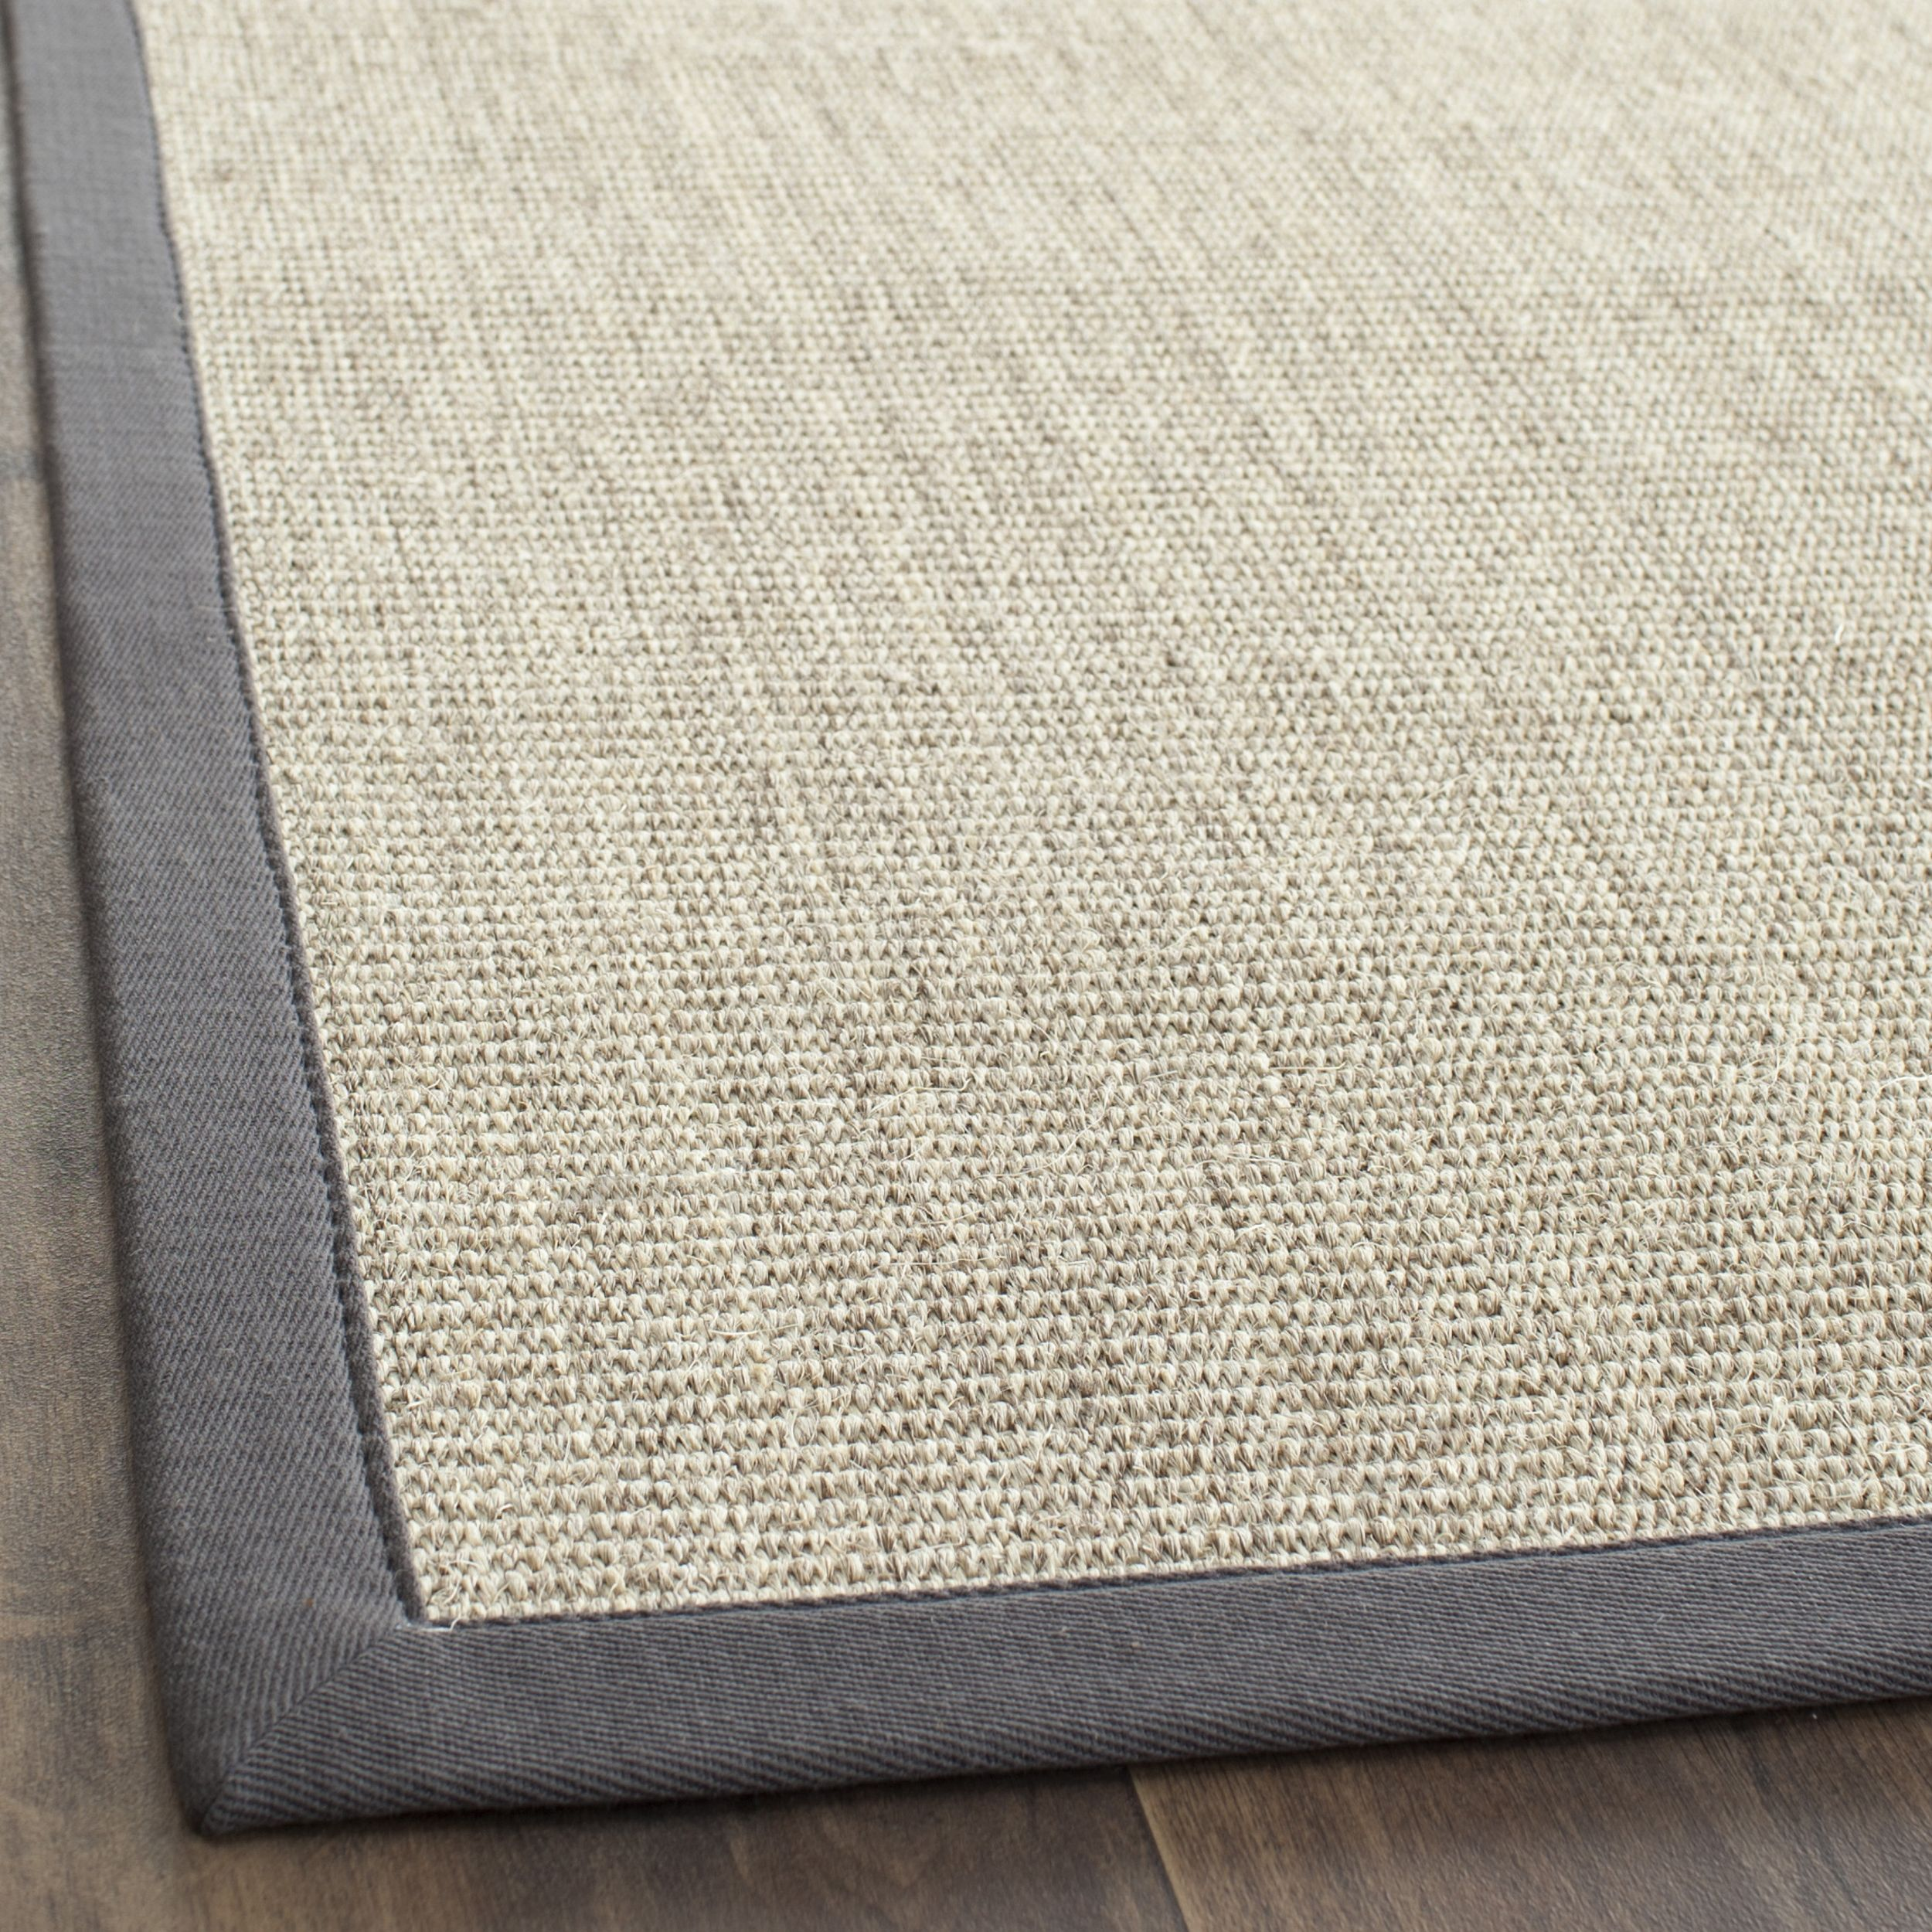 blue natural rugs fiber living decorative large ikea furniture vas rectangular room floor soft with homesfeed sisal ideas wooden stone rug